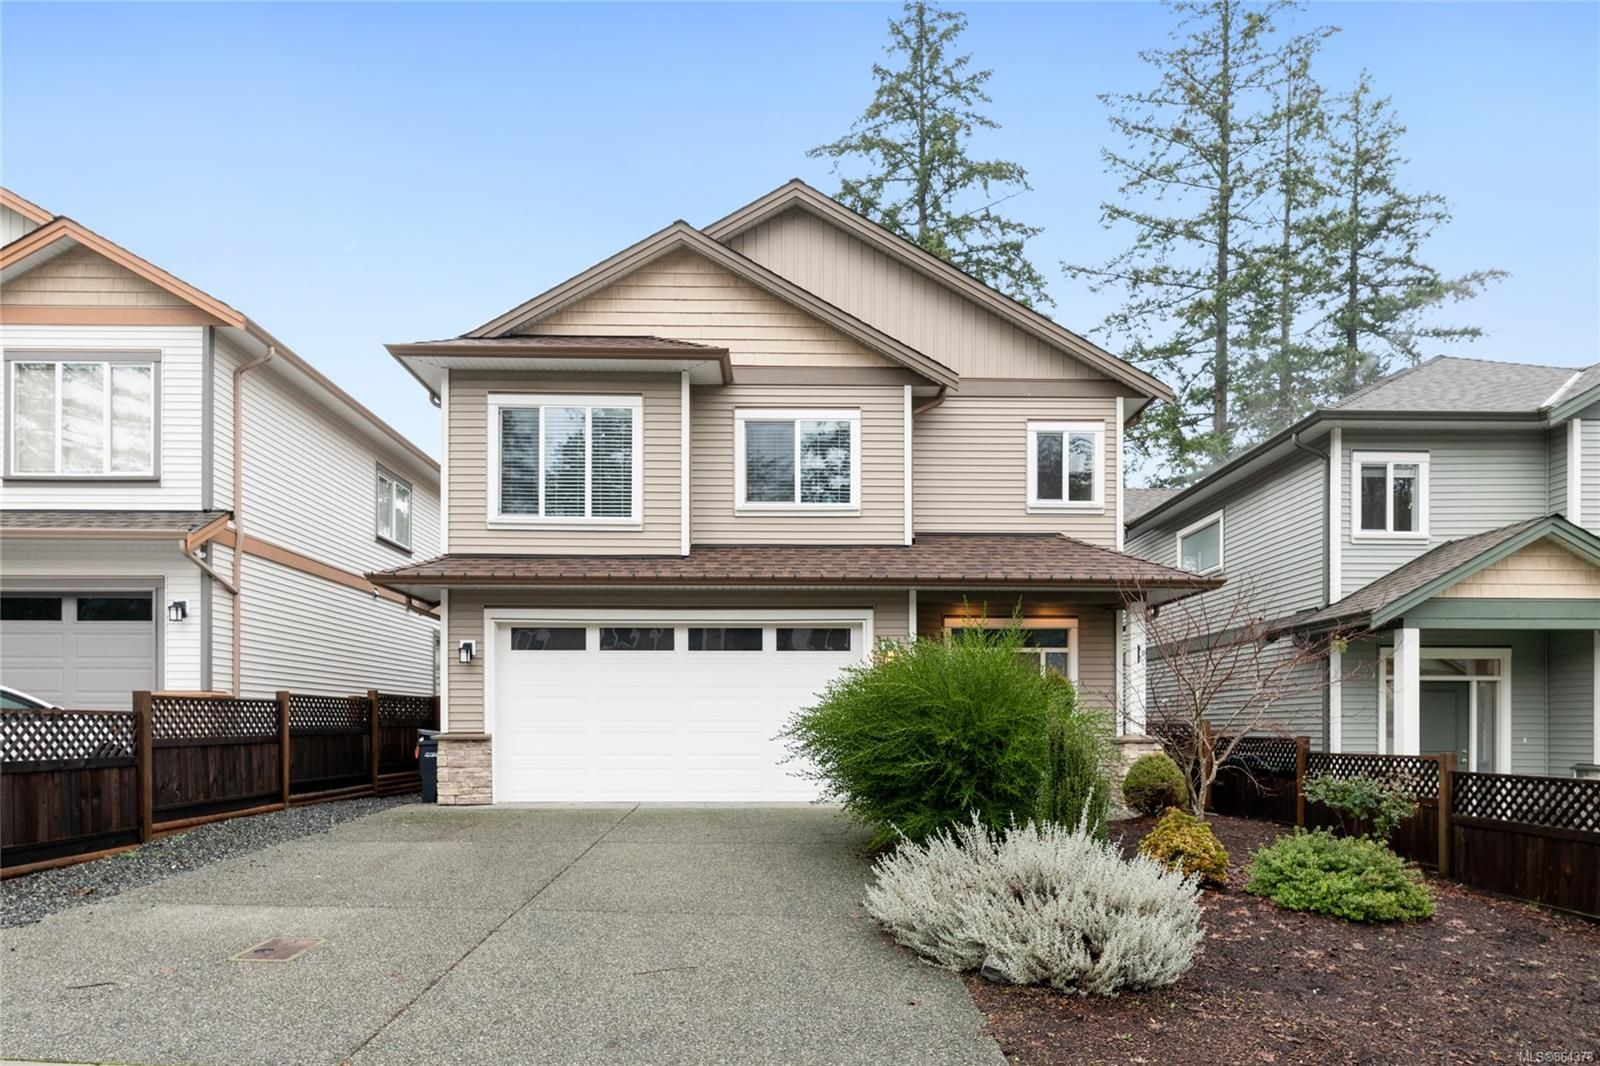 Main Photo: 1982 Camas Rd in : Na South Jingle Pot House for sale (Nanaimo)  : MLS®# 864378